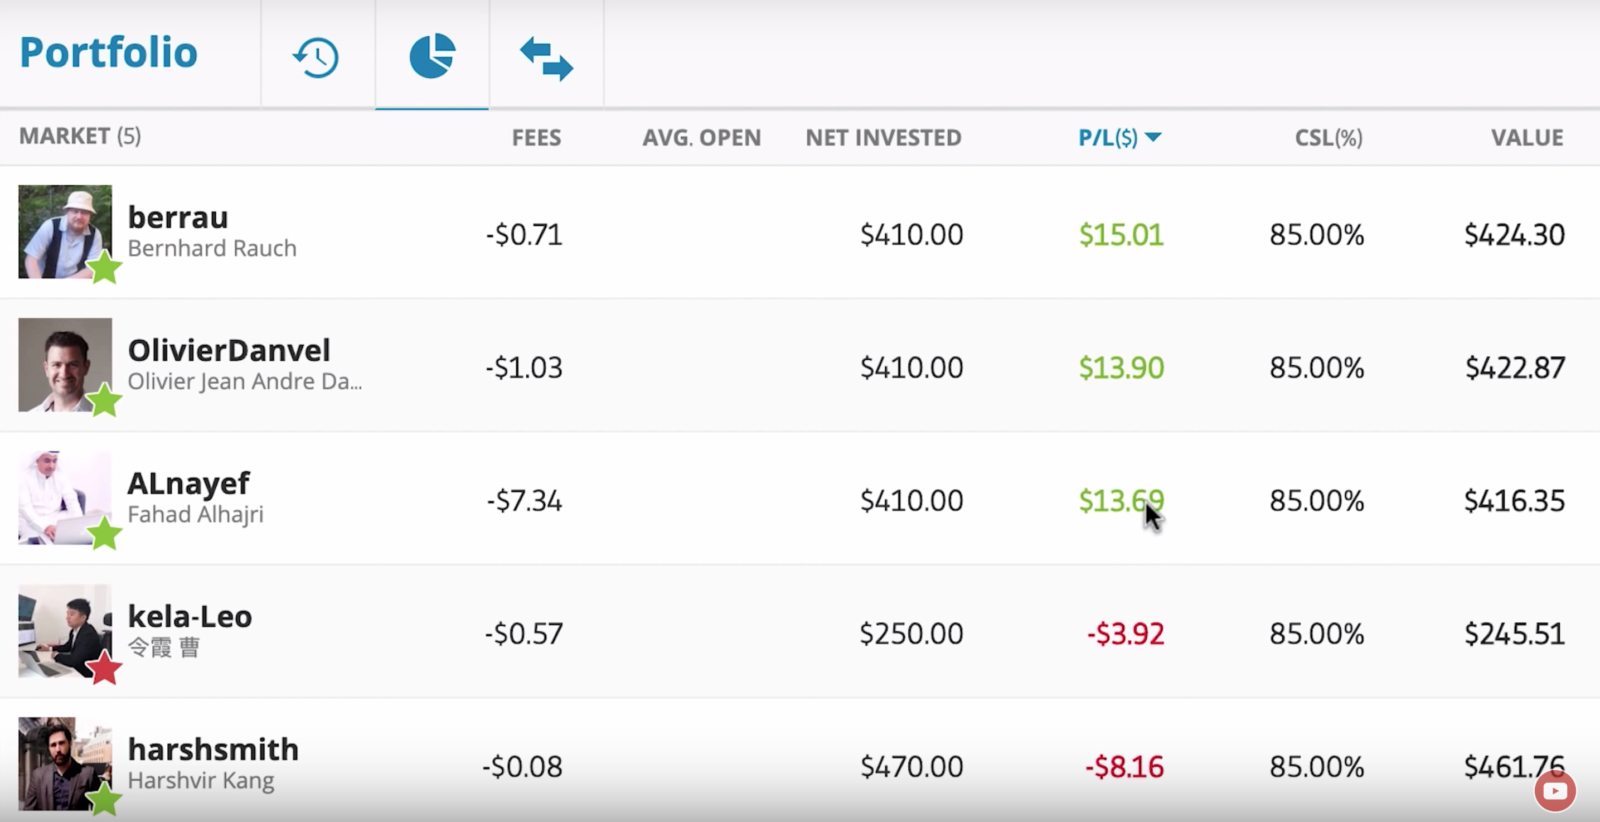 Alanayef's fees on eToro June 2019